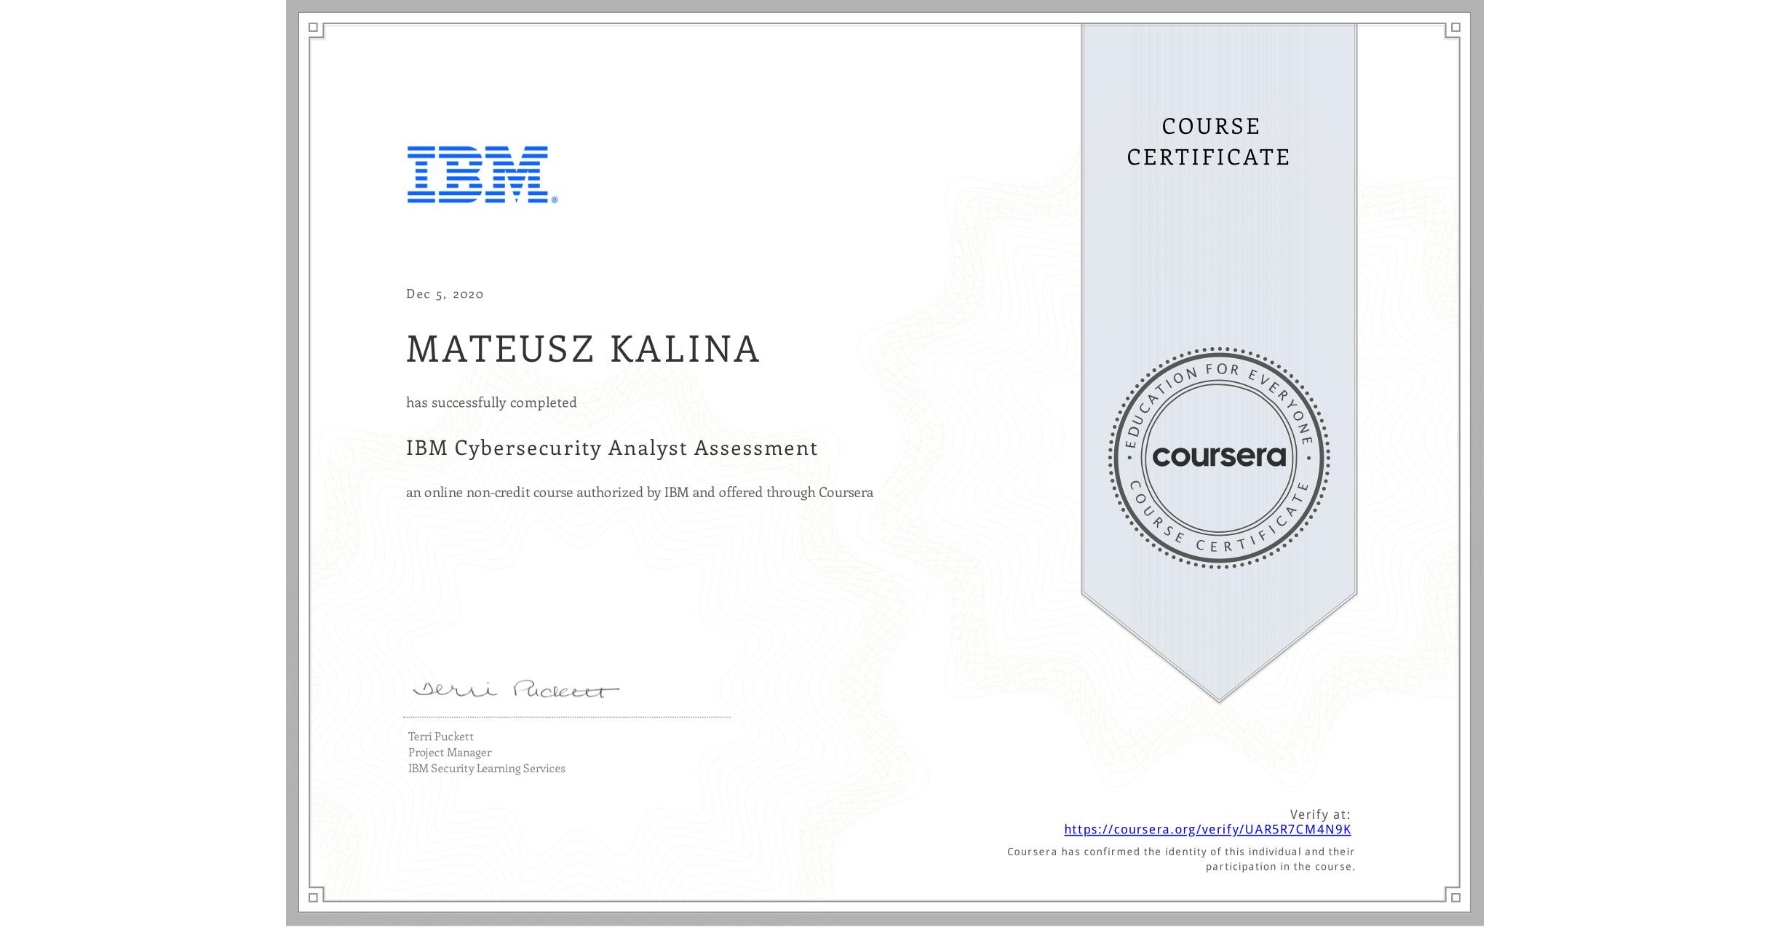 View certificate for MATEUSZ KALINA, IBM Cybersecurity Analyst Assessment , an online non-credit course authorized by IBM and offered through Coursera